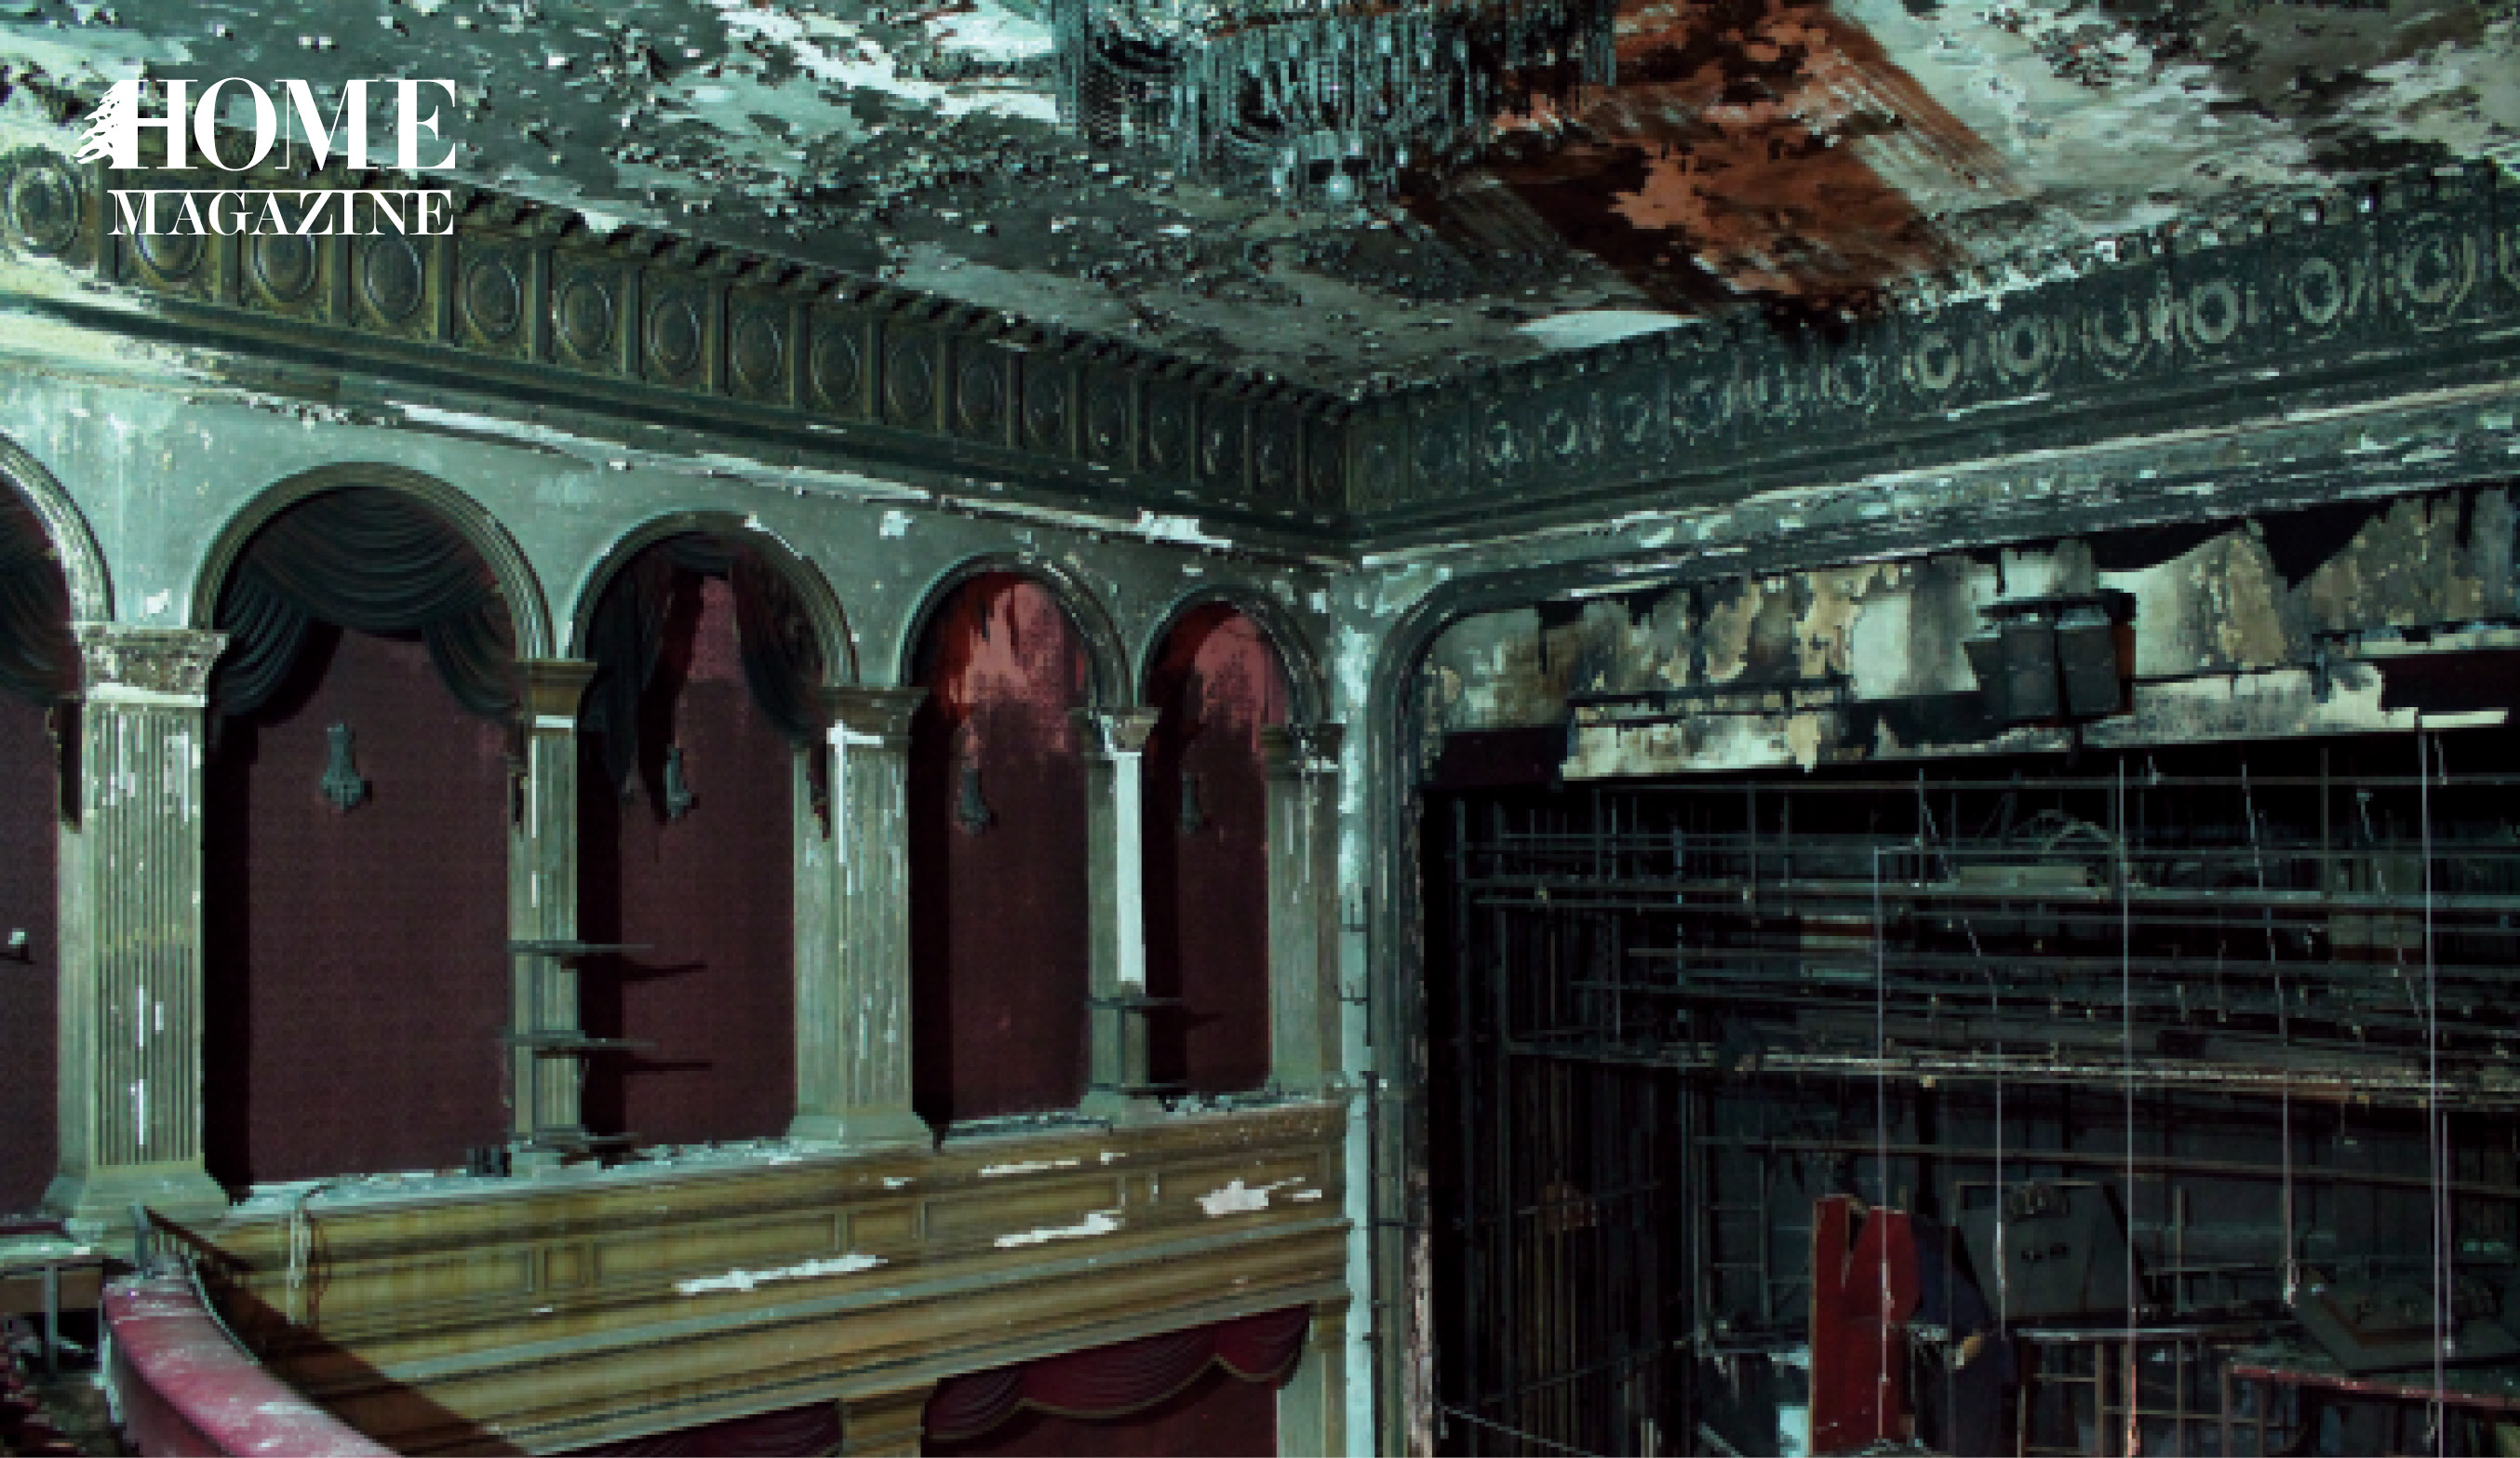 The Piccadilly Theater Frozen in Time